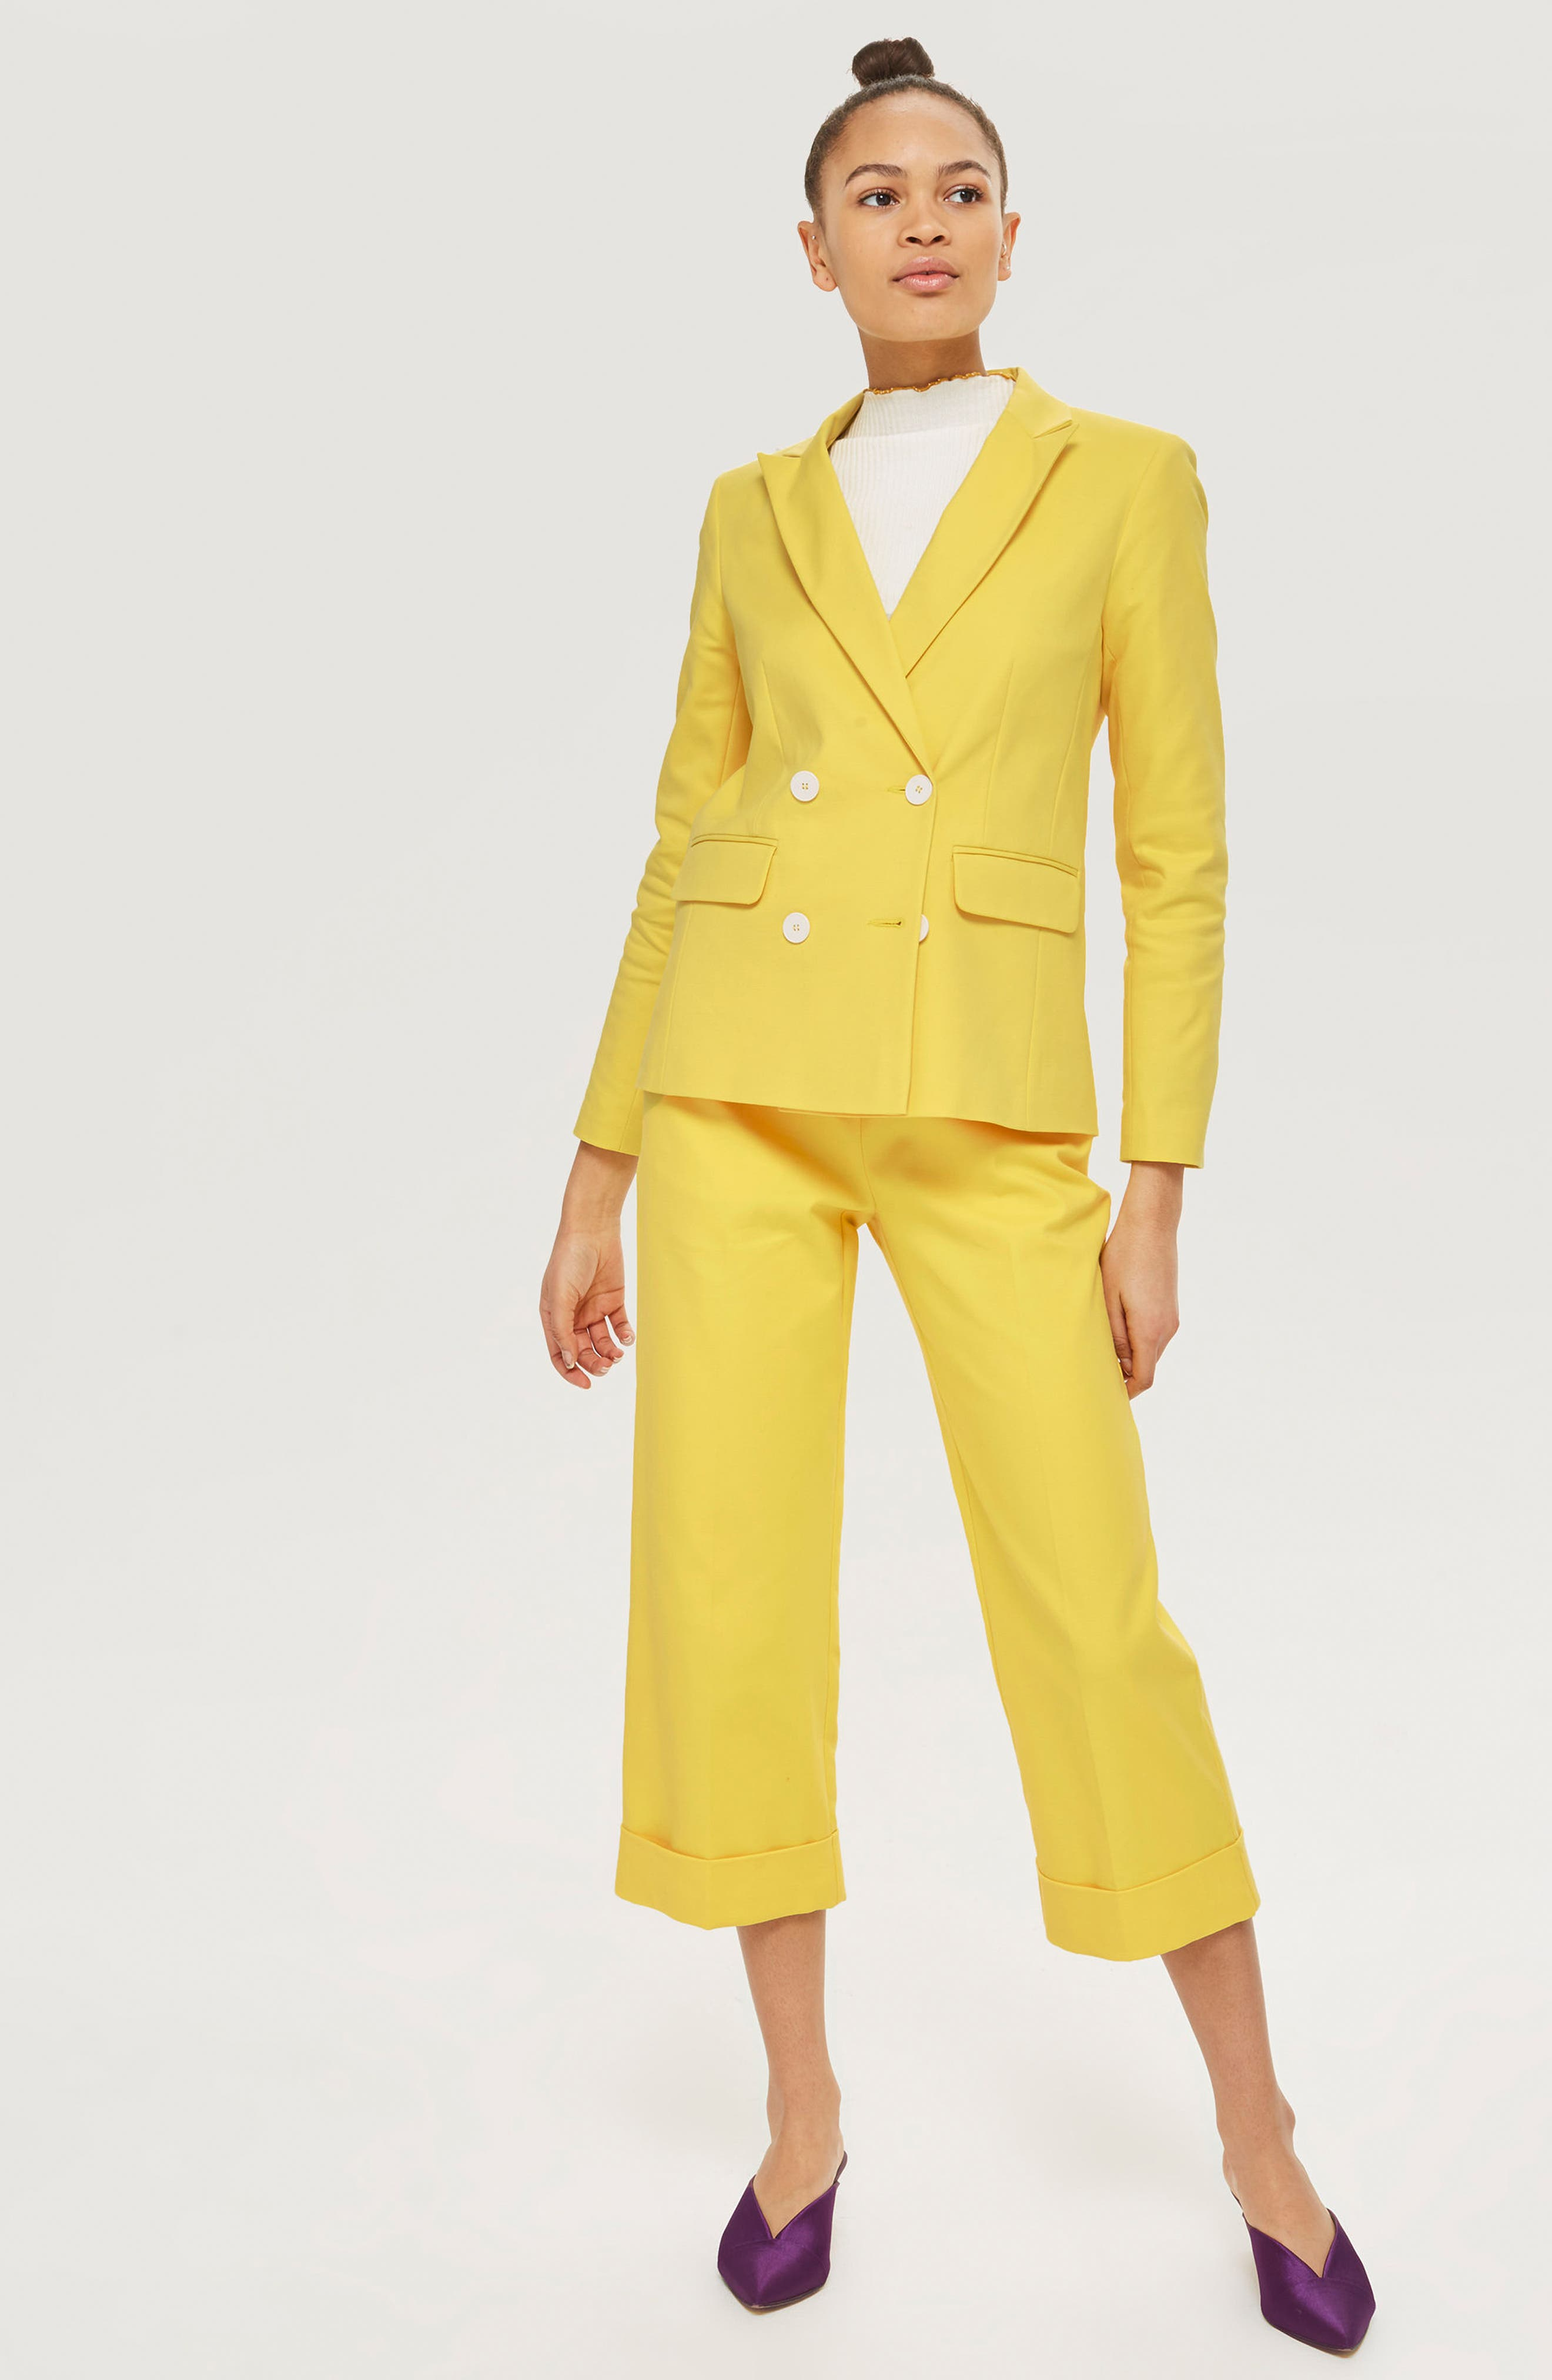 Milly Double Breasted Suit Jacket,                             Alternate thumbnail 4, color,                             700